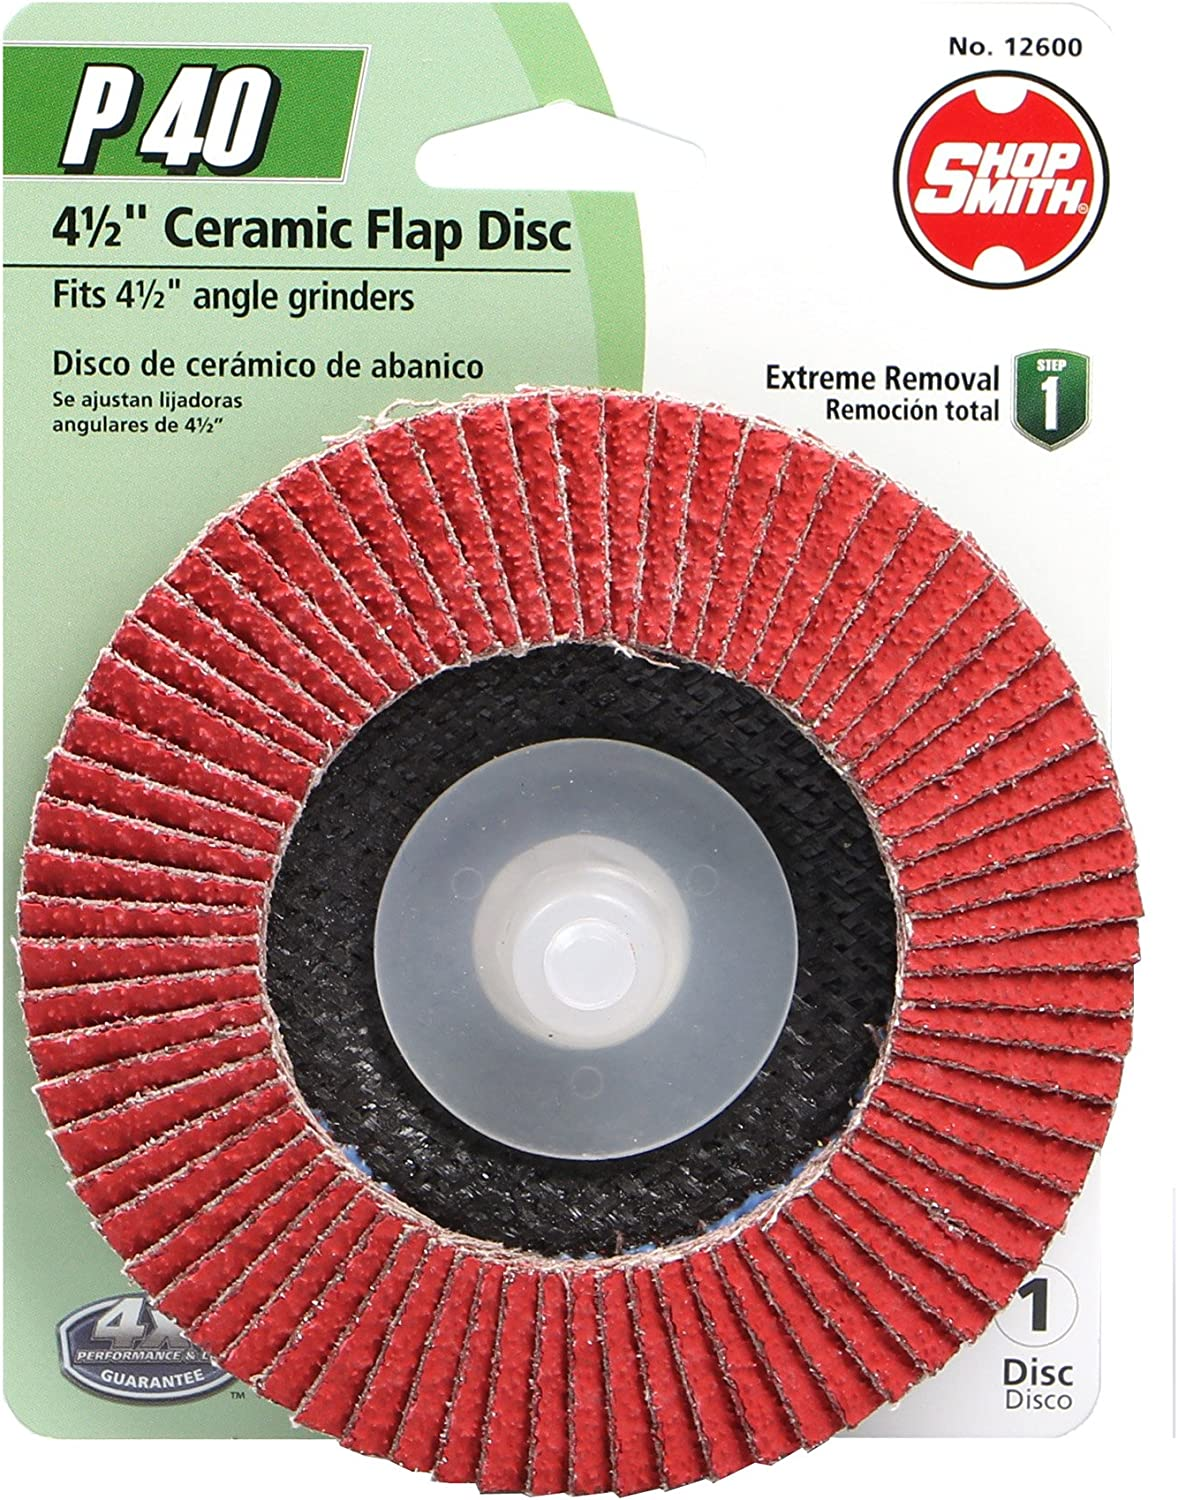 Shopsmith 12600 40 Grit Ceramic Specialty (1 Pack), 4.5""